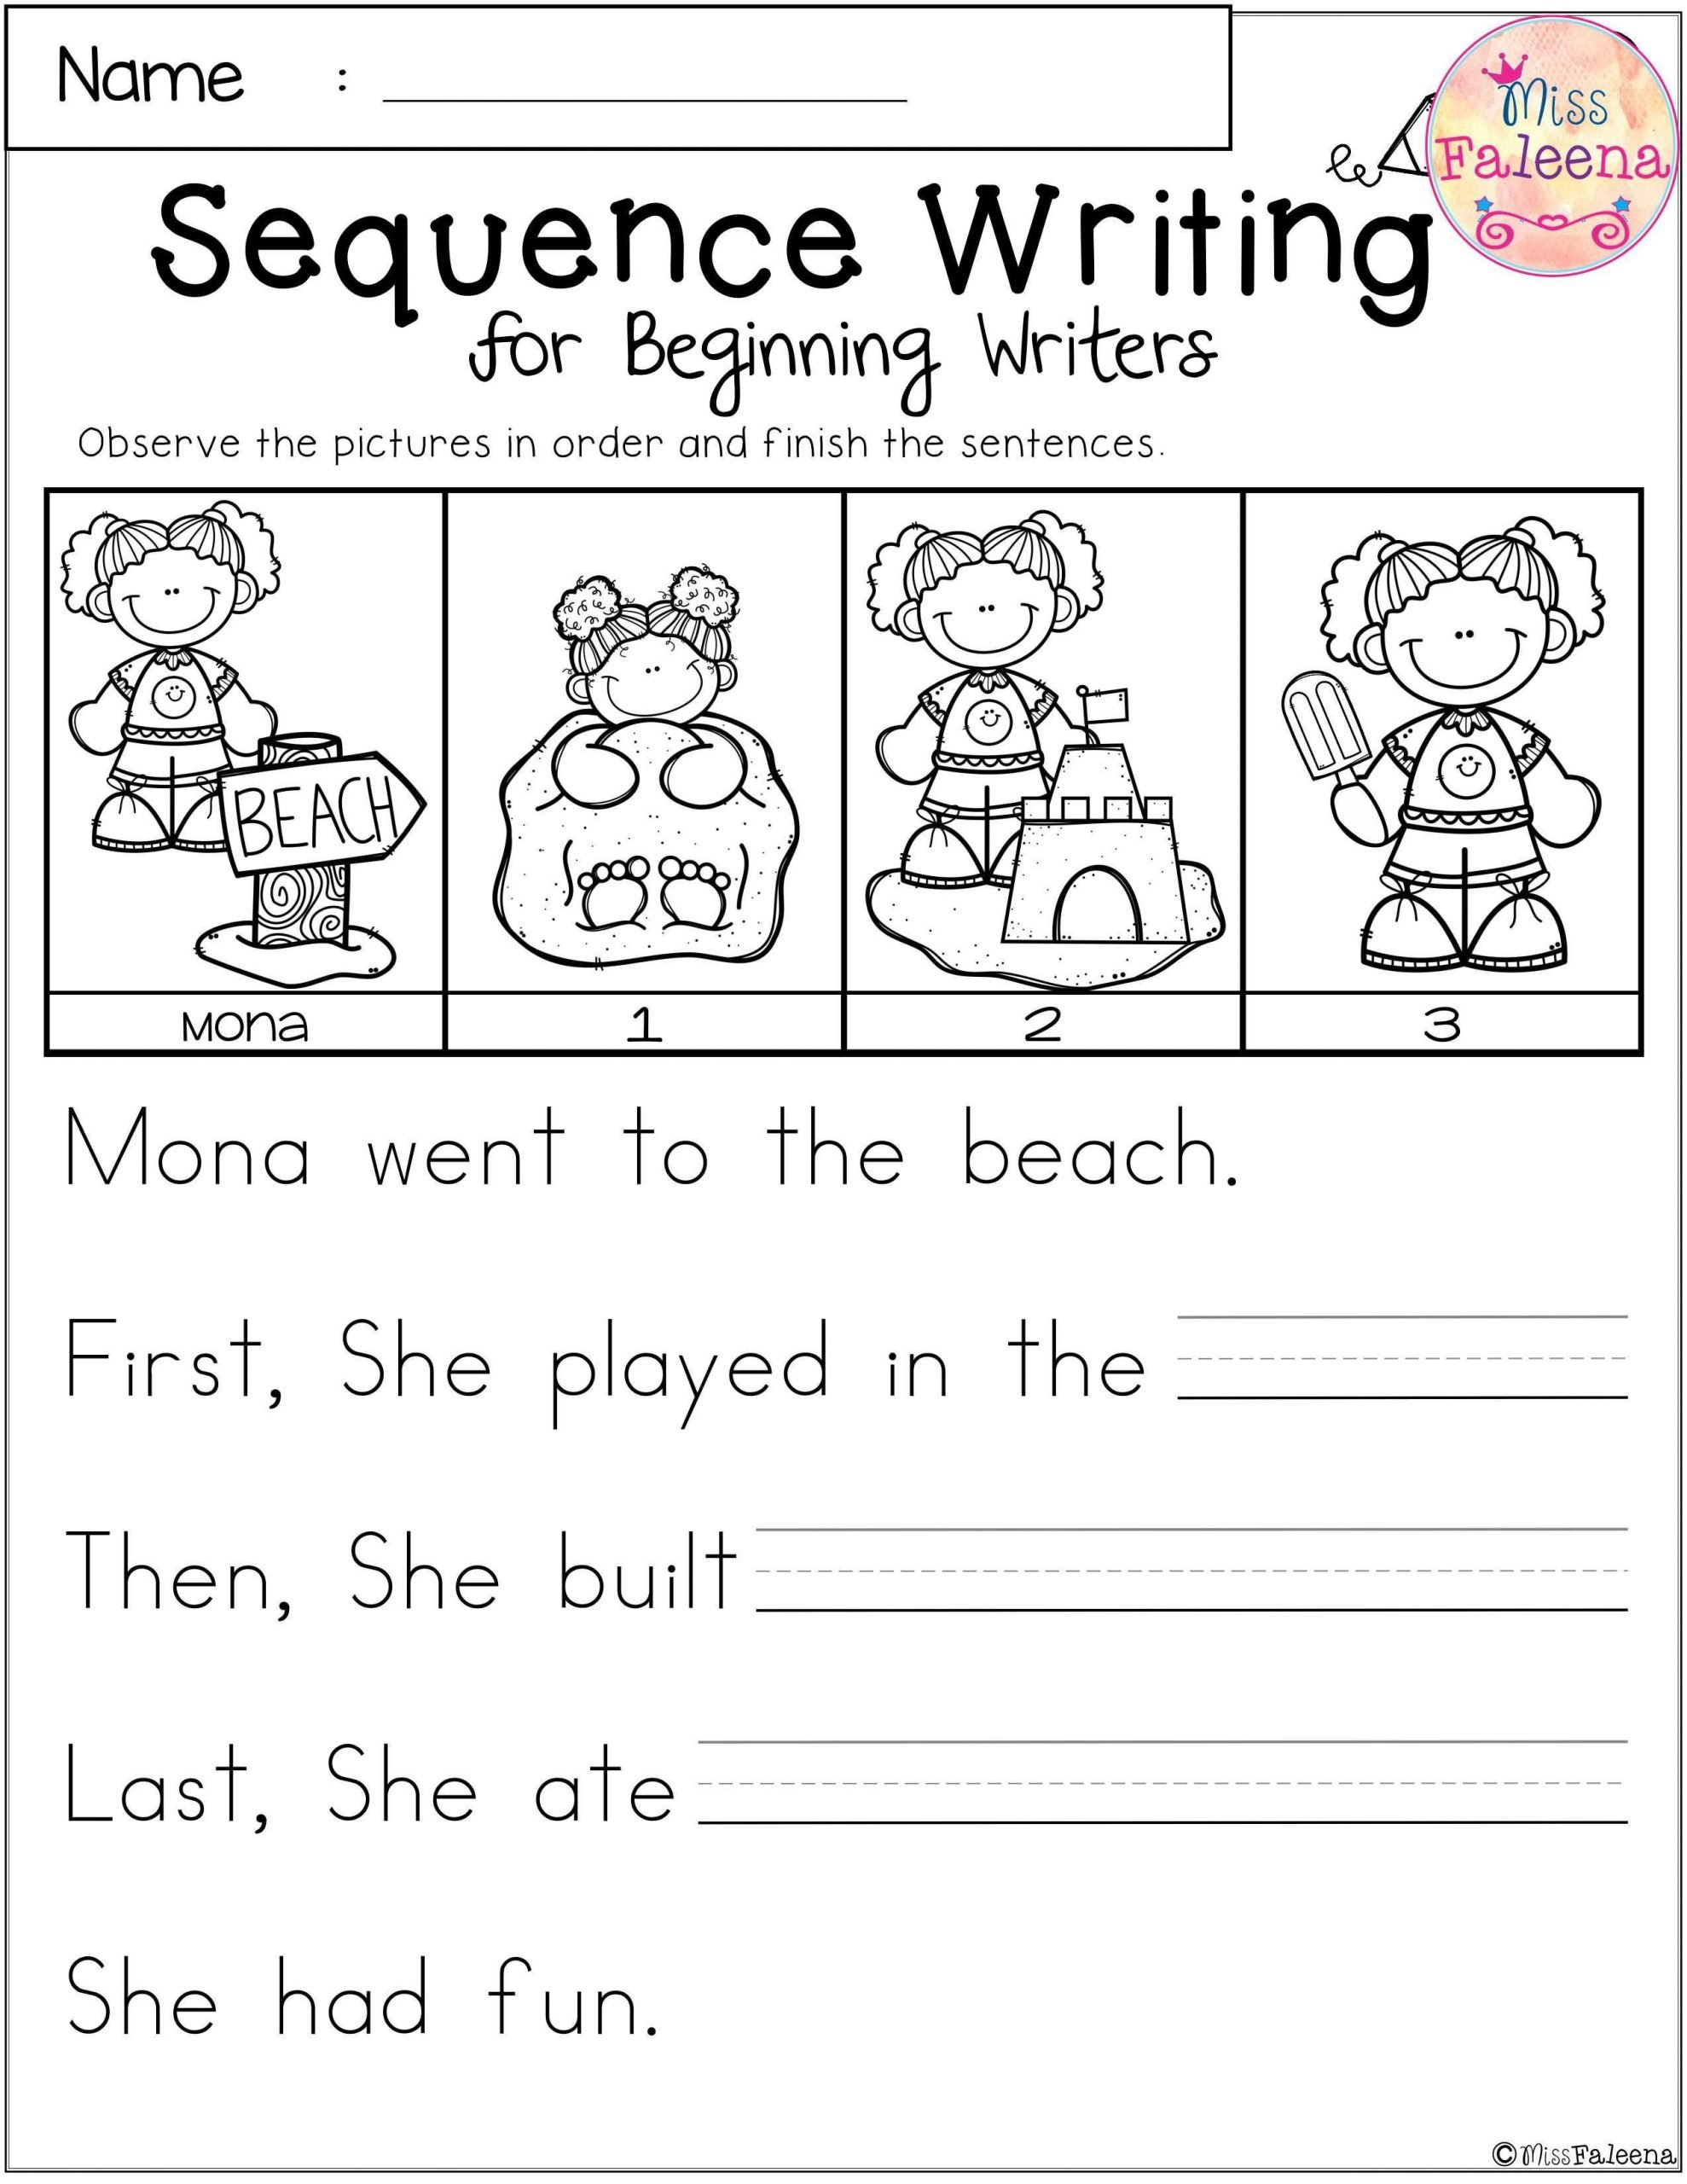 Story Sequencing Worksheets for Kindergarten Free Sequence Writing for Beginning Writers